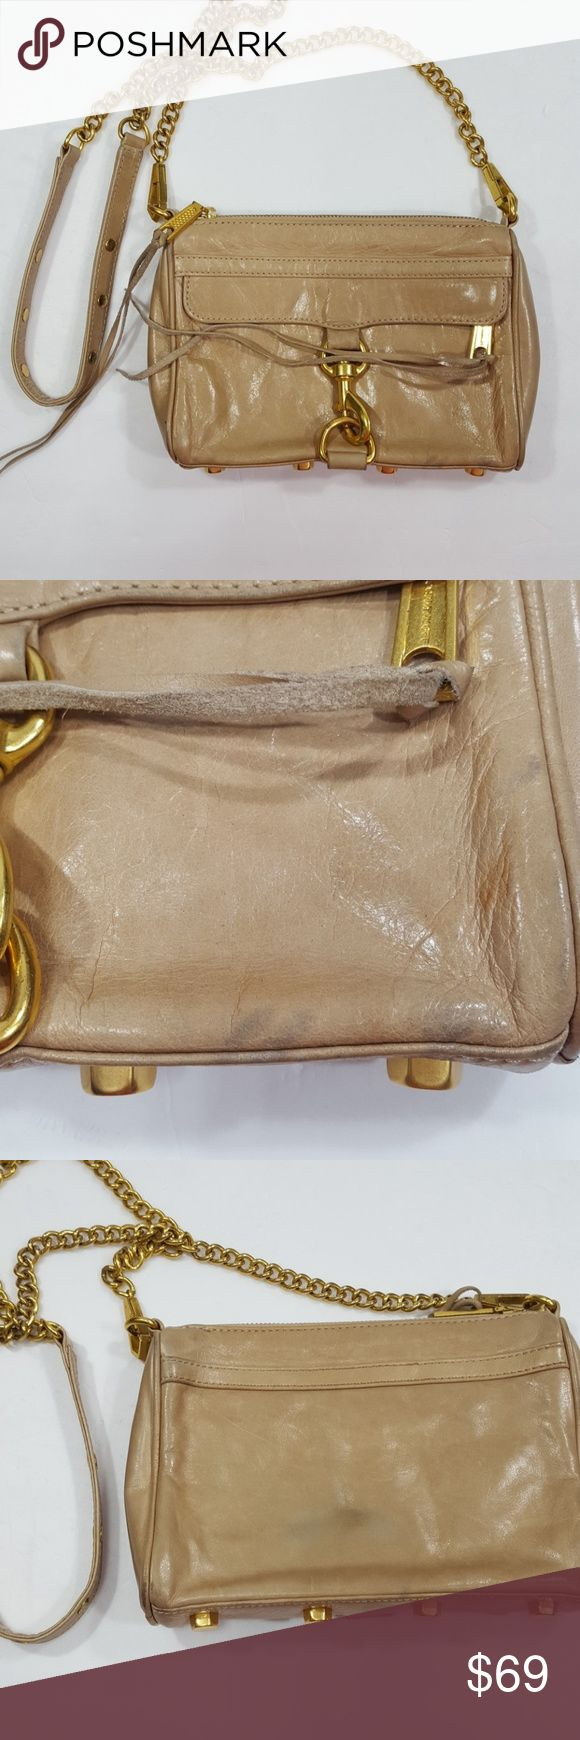 "Rebecca Minkoff Mini Mac Tan Purse Rebecca Minkoff Mini Mac Tan Purse 8 1/2 x 6 1/2  24"" strap Good condition with some marks Clean blue interior Rebecca Minkoff Bags"